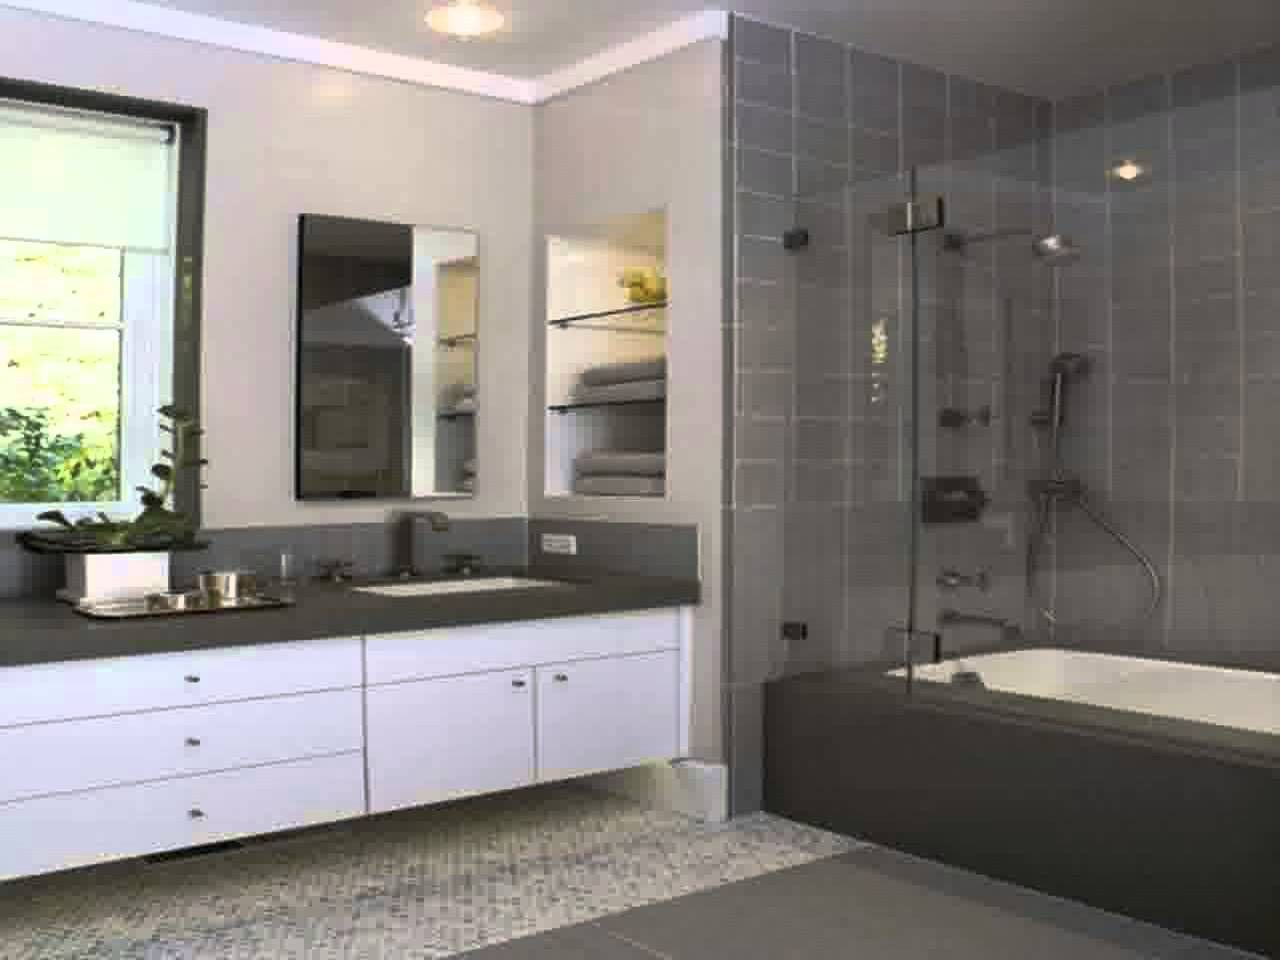 Bathroom Designing Software Latest Posts Under Bathroom Ideas  Bathroom Design 20172018